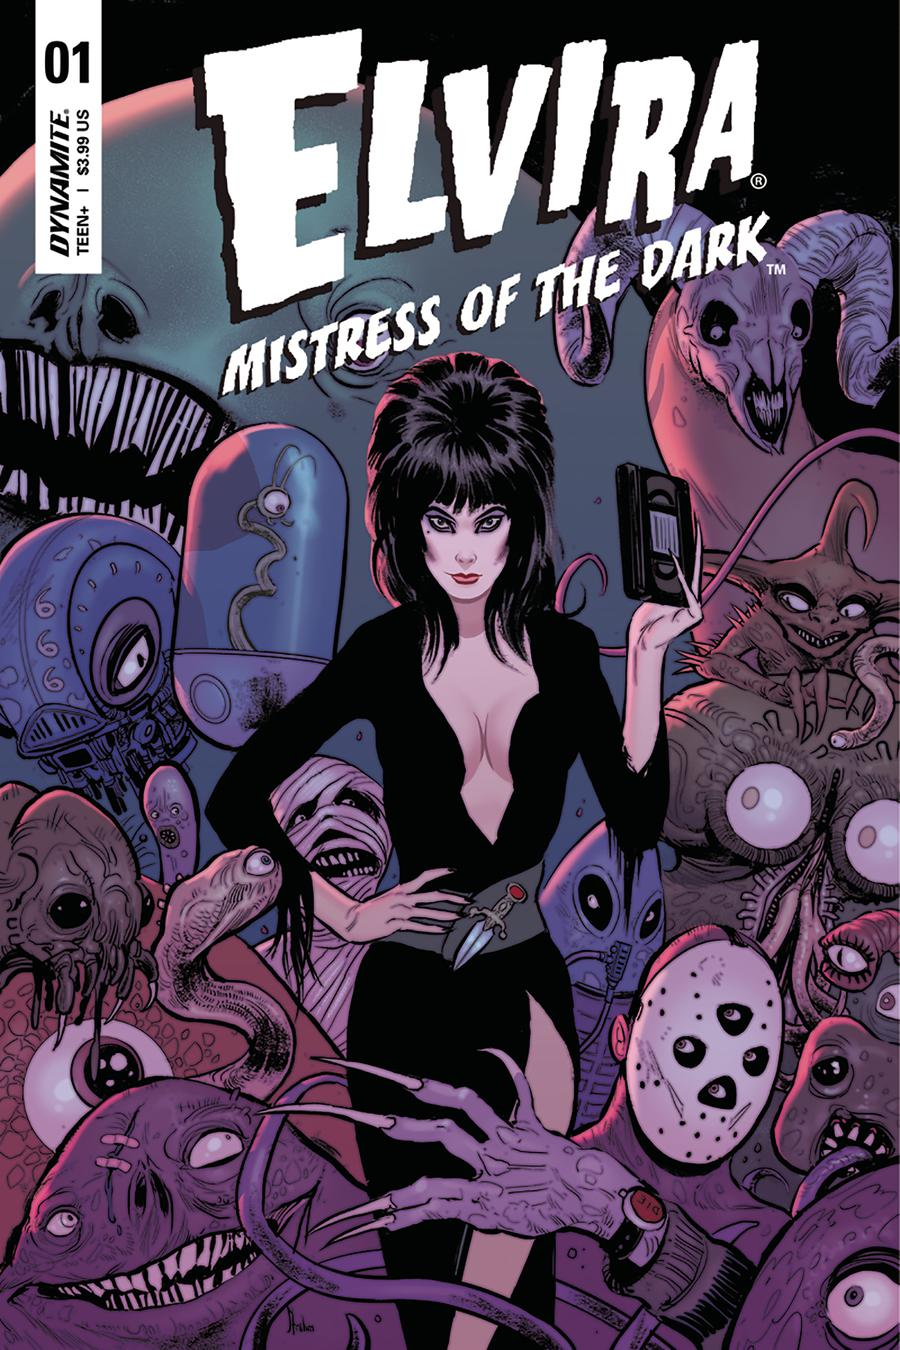 Elvira Mistress Of The Dark Vol 2 #1 Cover C Variant Kyle Strahm Cover